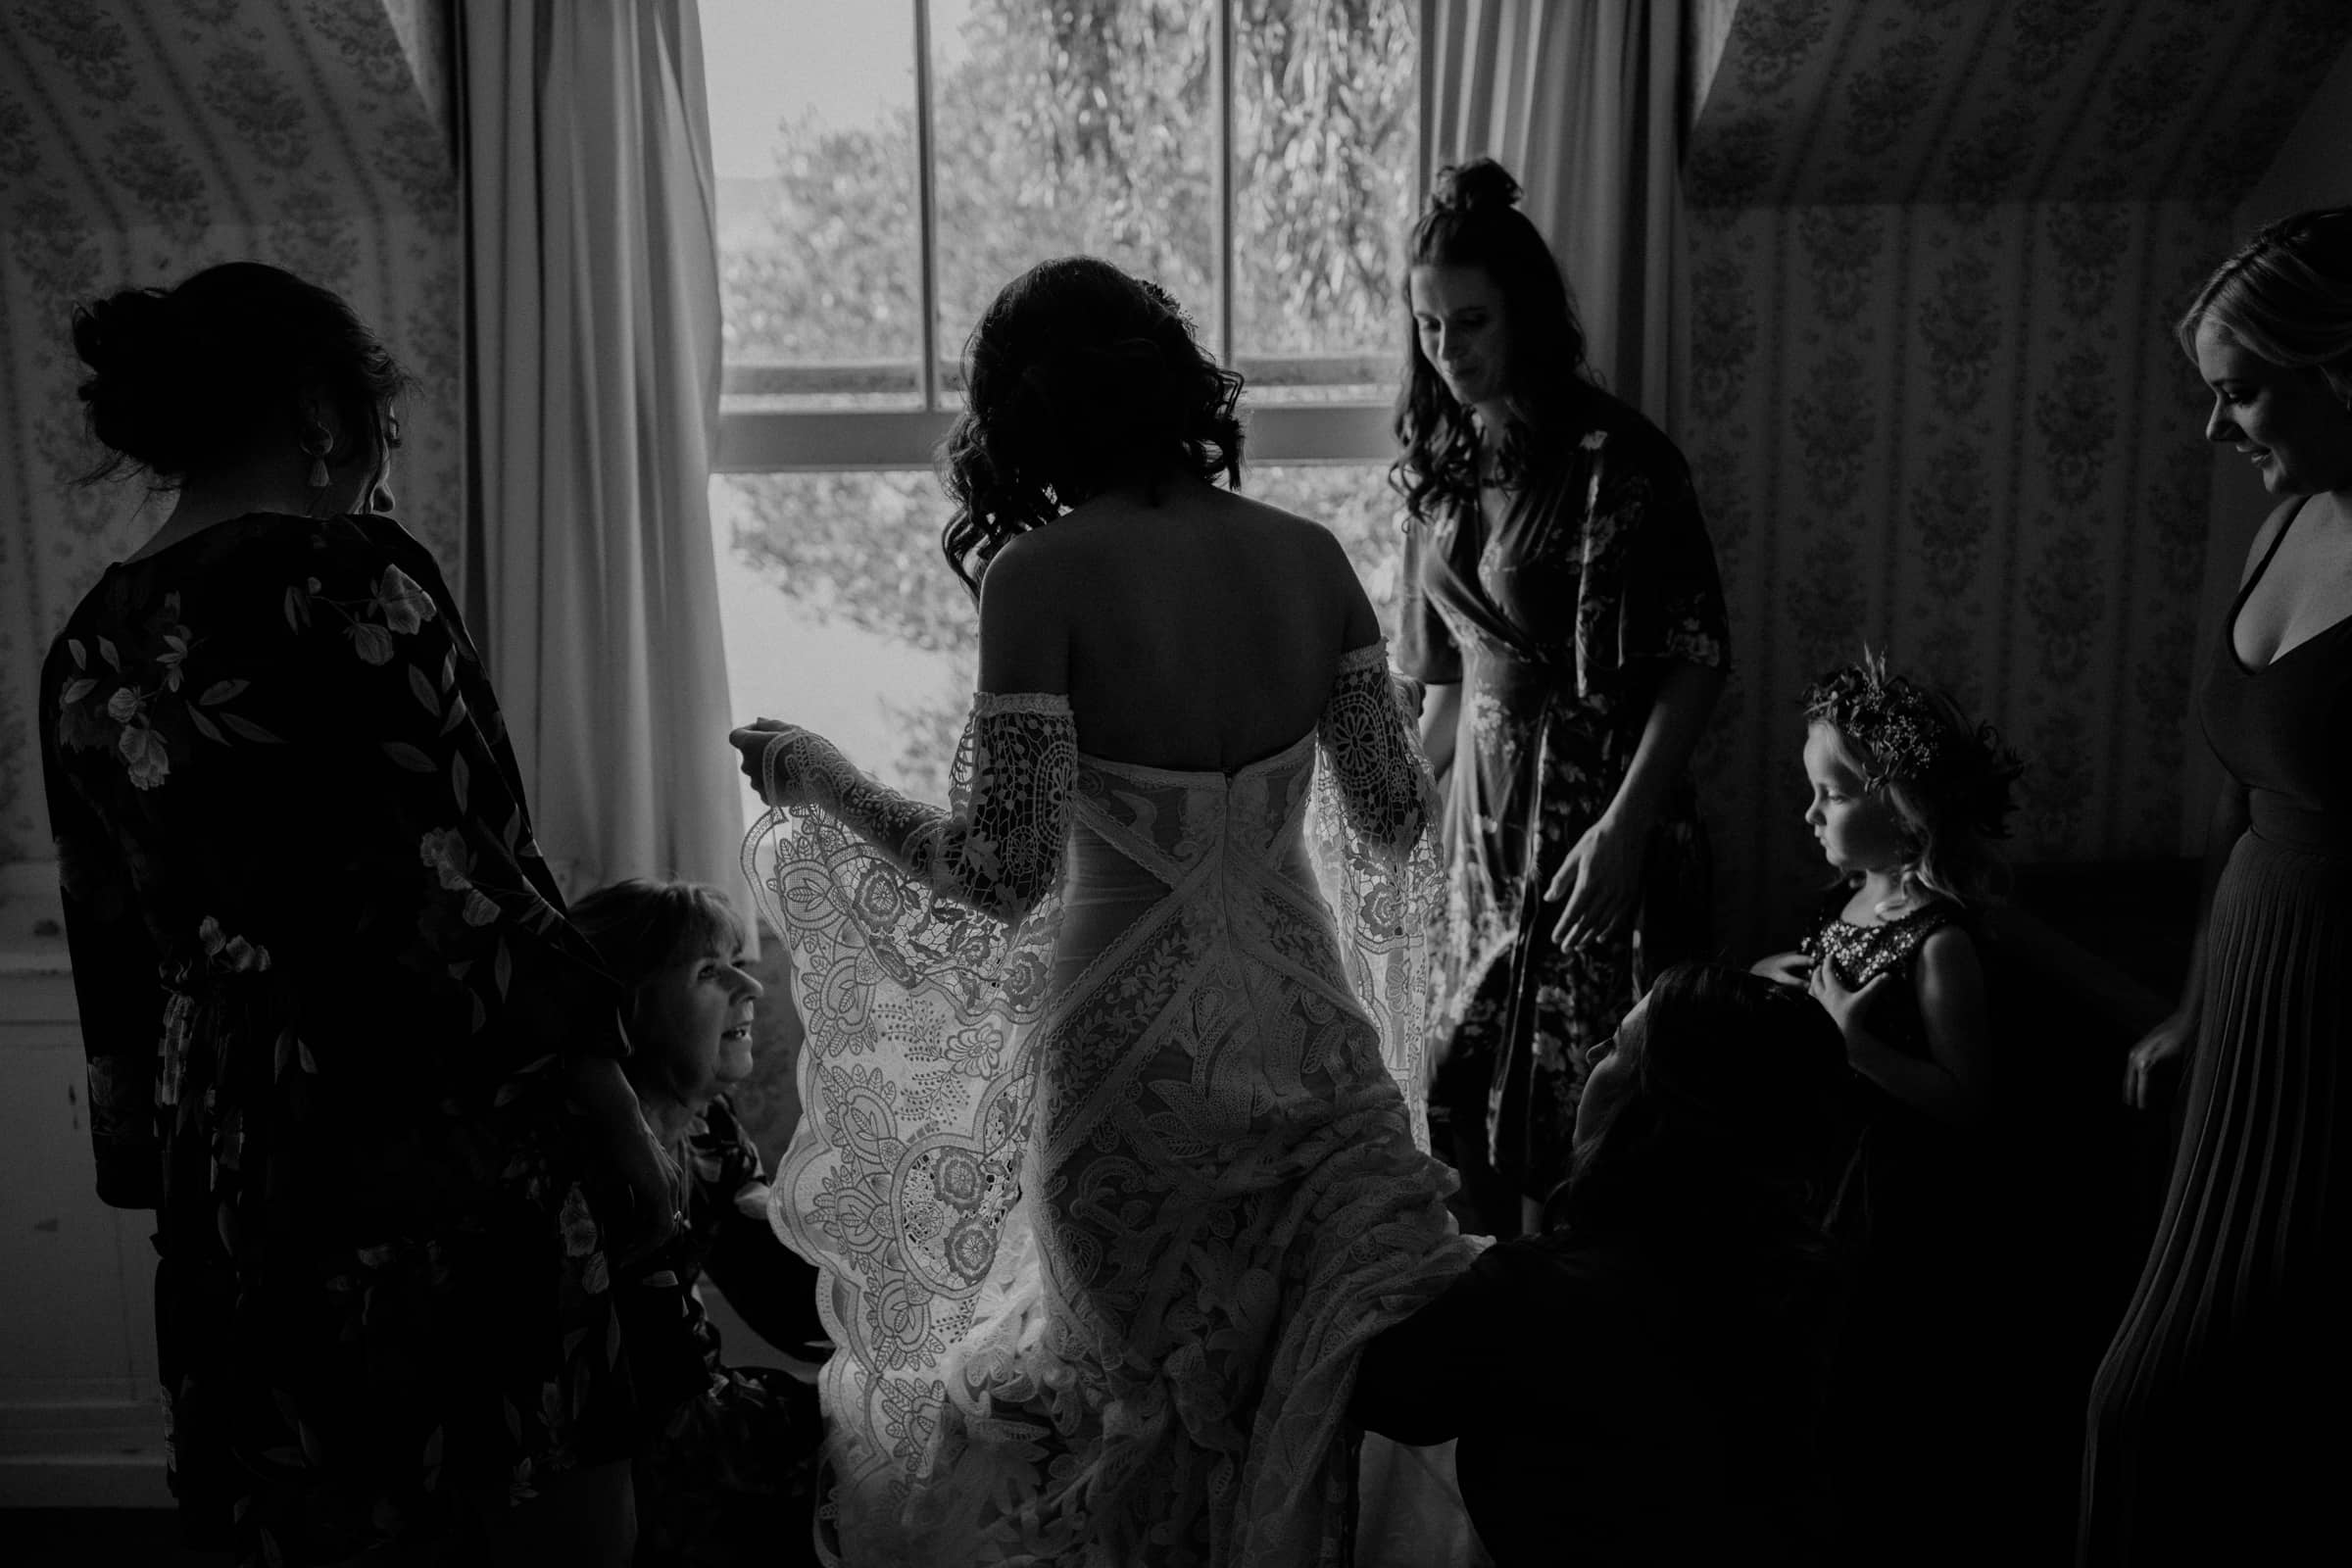 A bride is wearing her wedding dress and is standing in front of a window with her wedding guests.